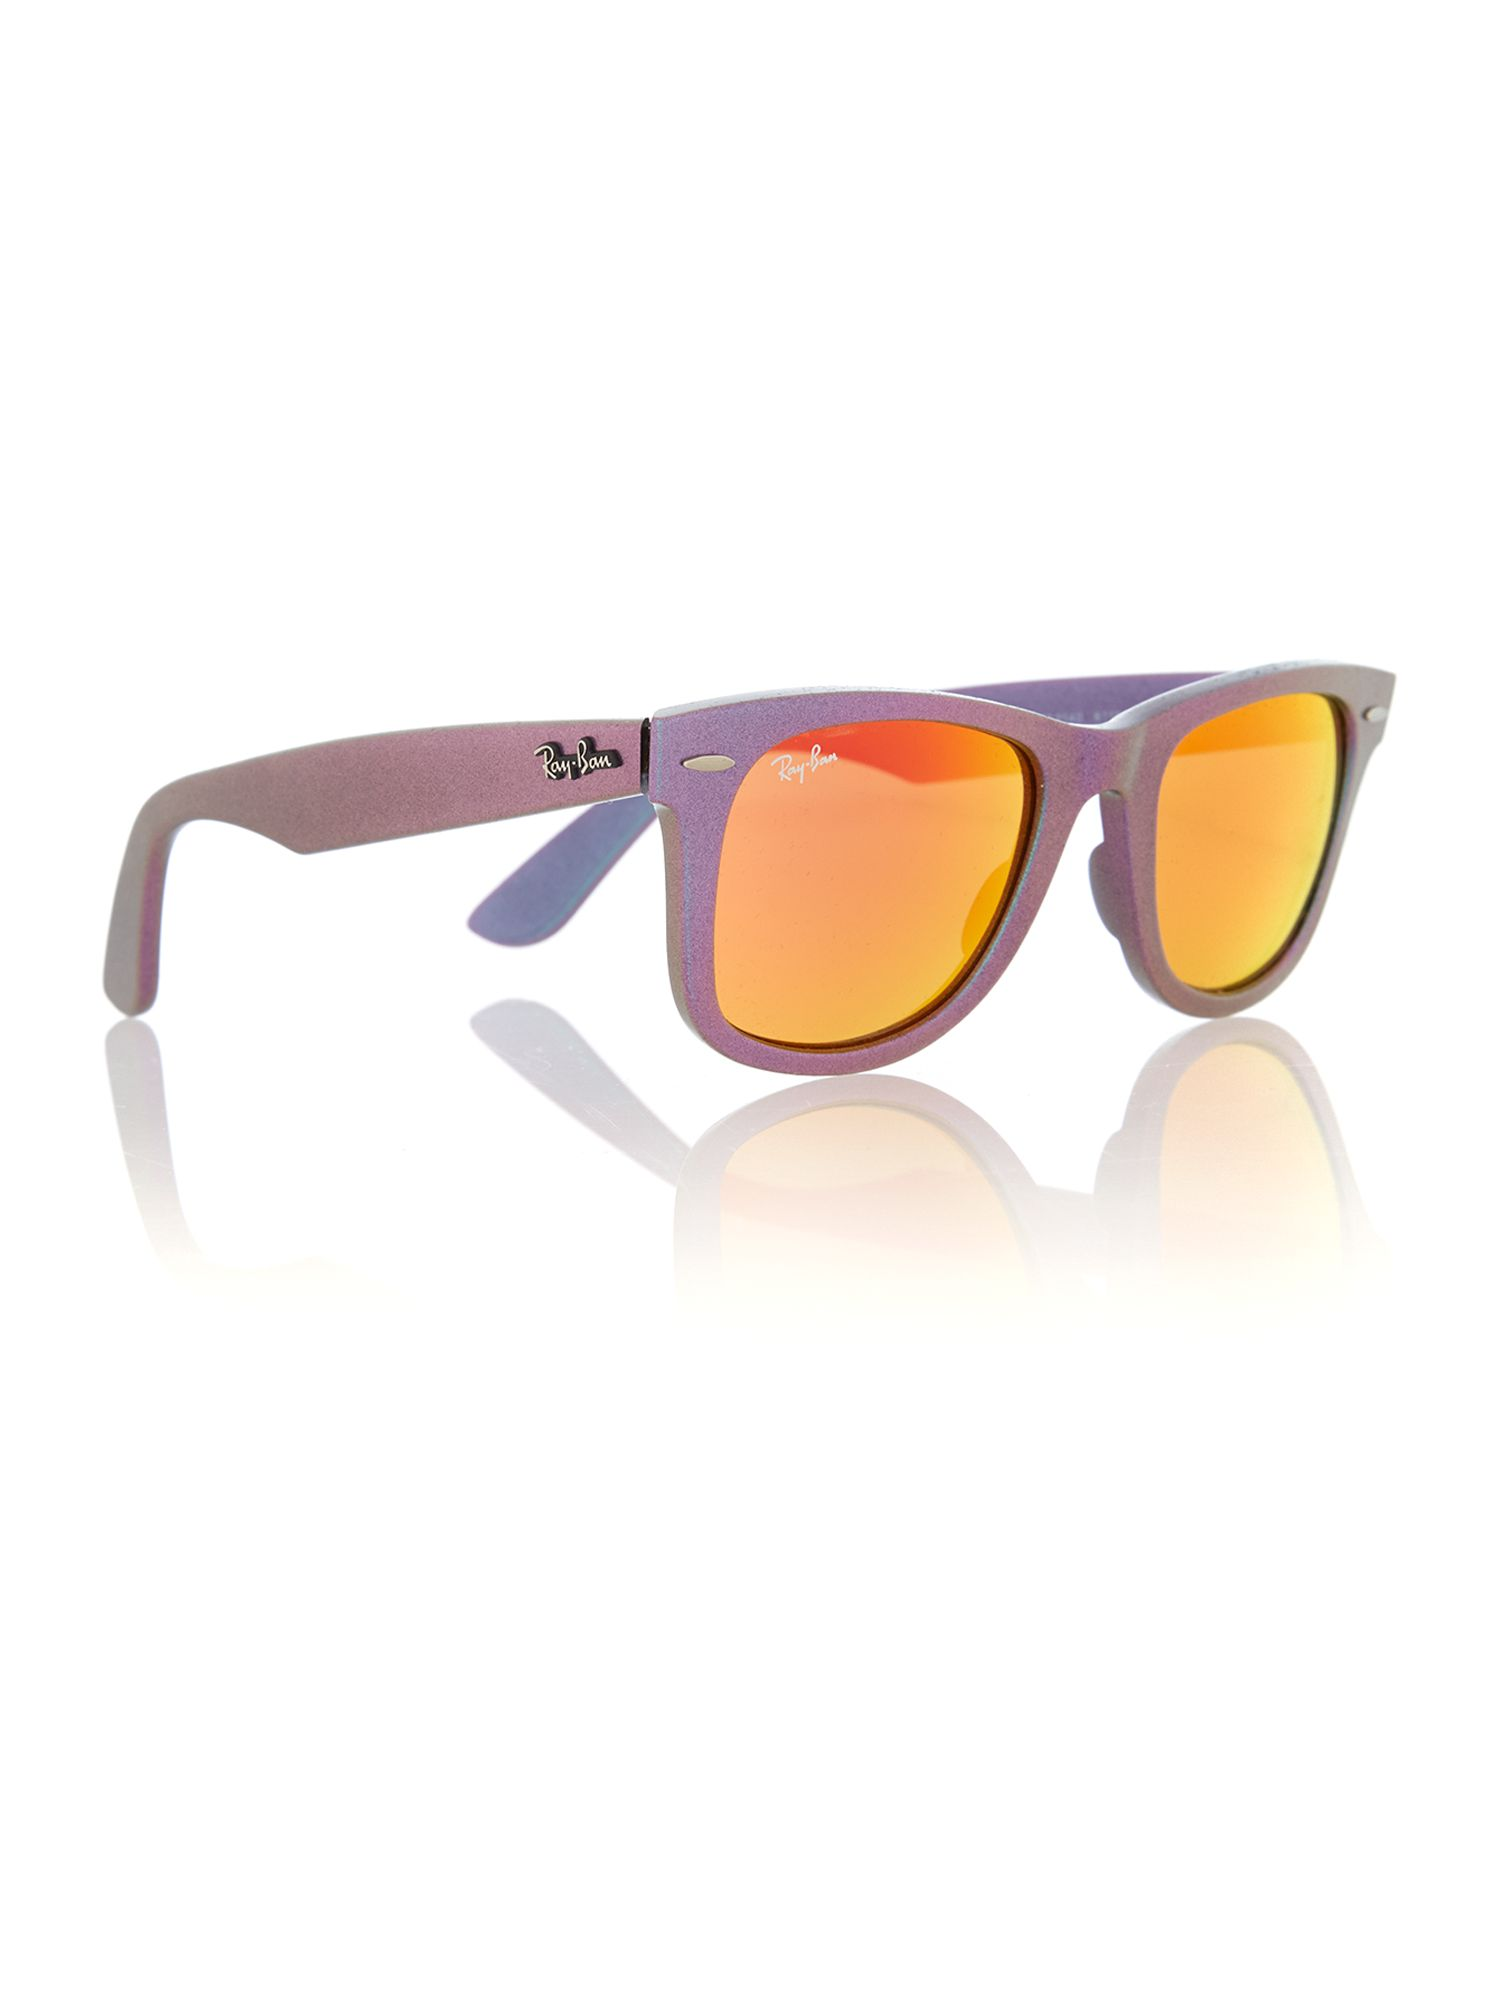 Unisex brown mirror orange squared sunglasses